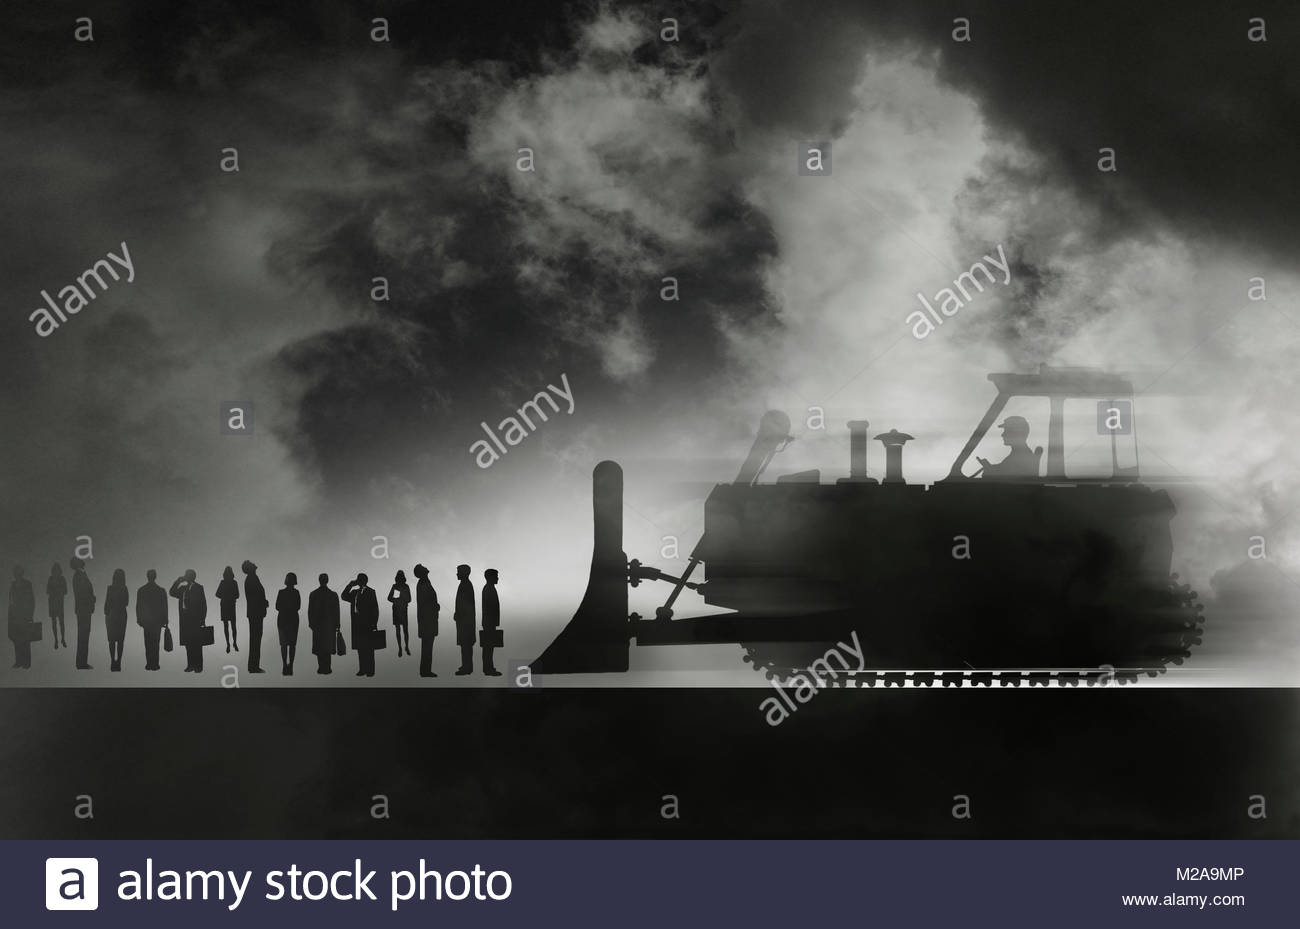 Bulldozer approaching row of business people - Stock Image